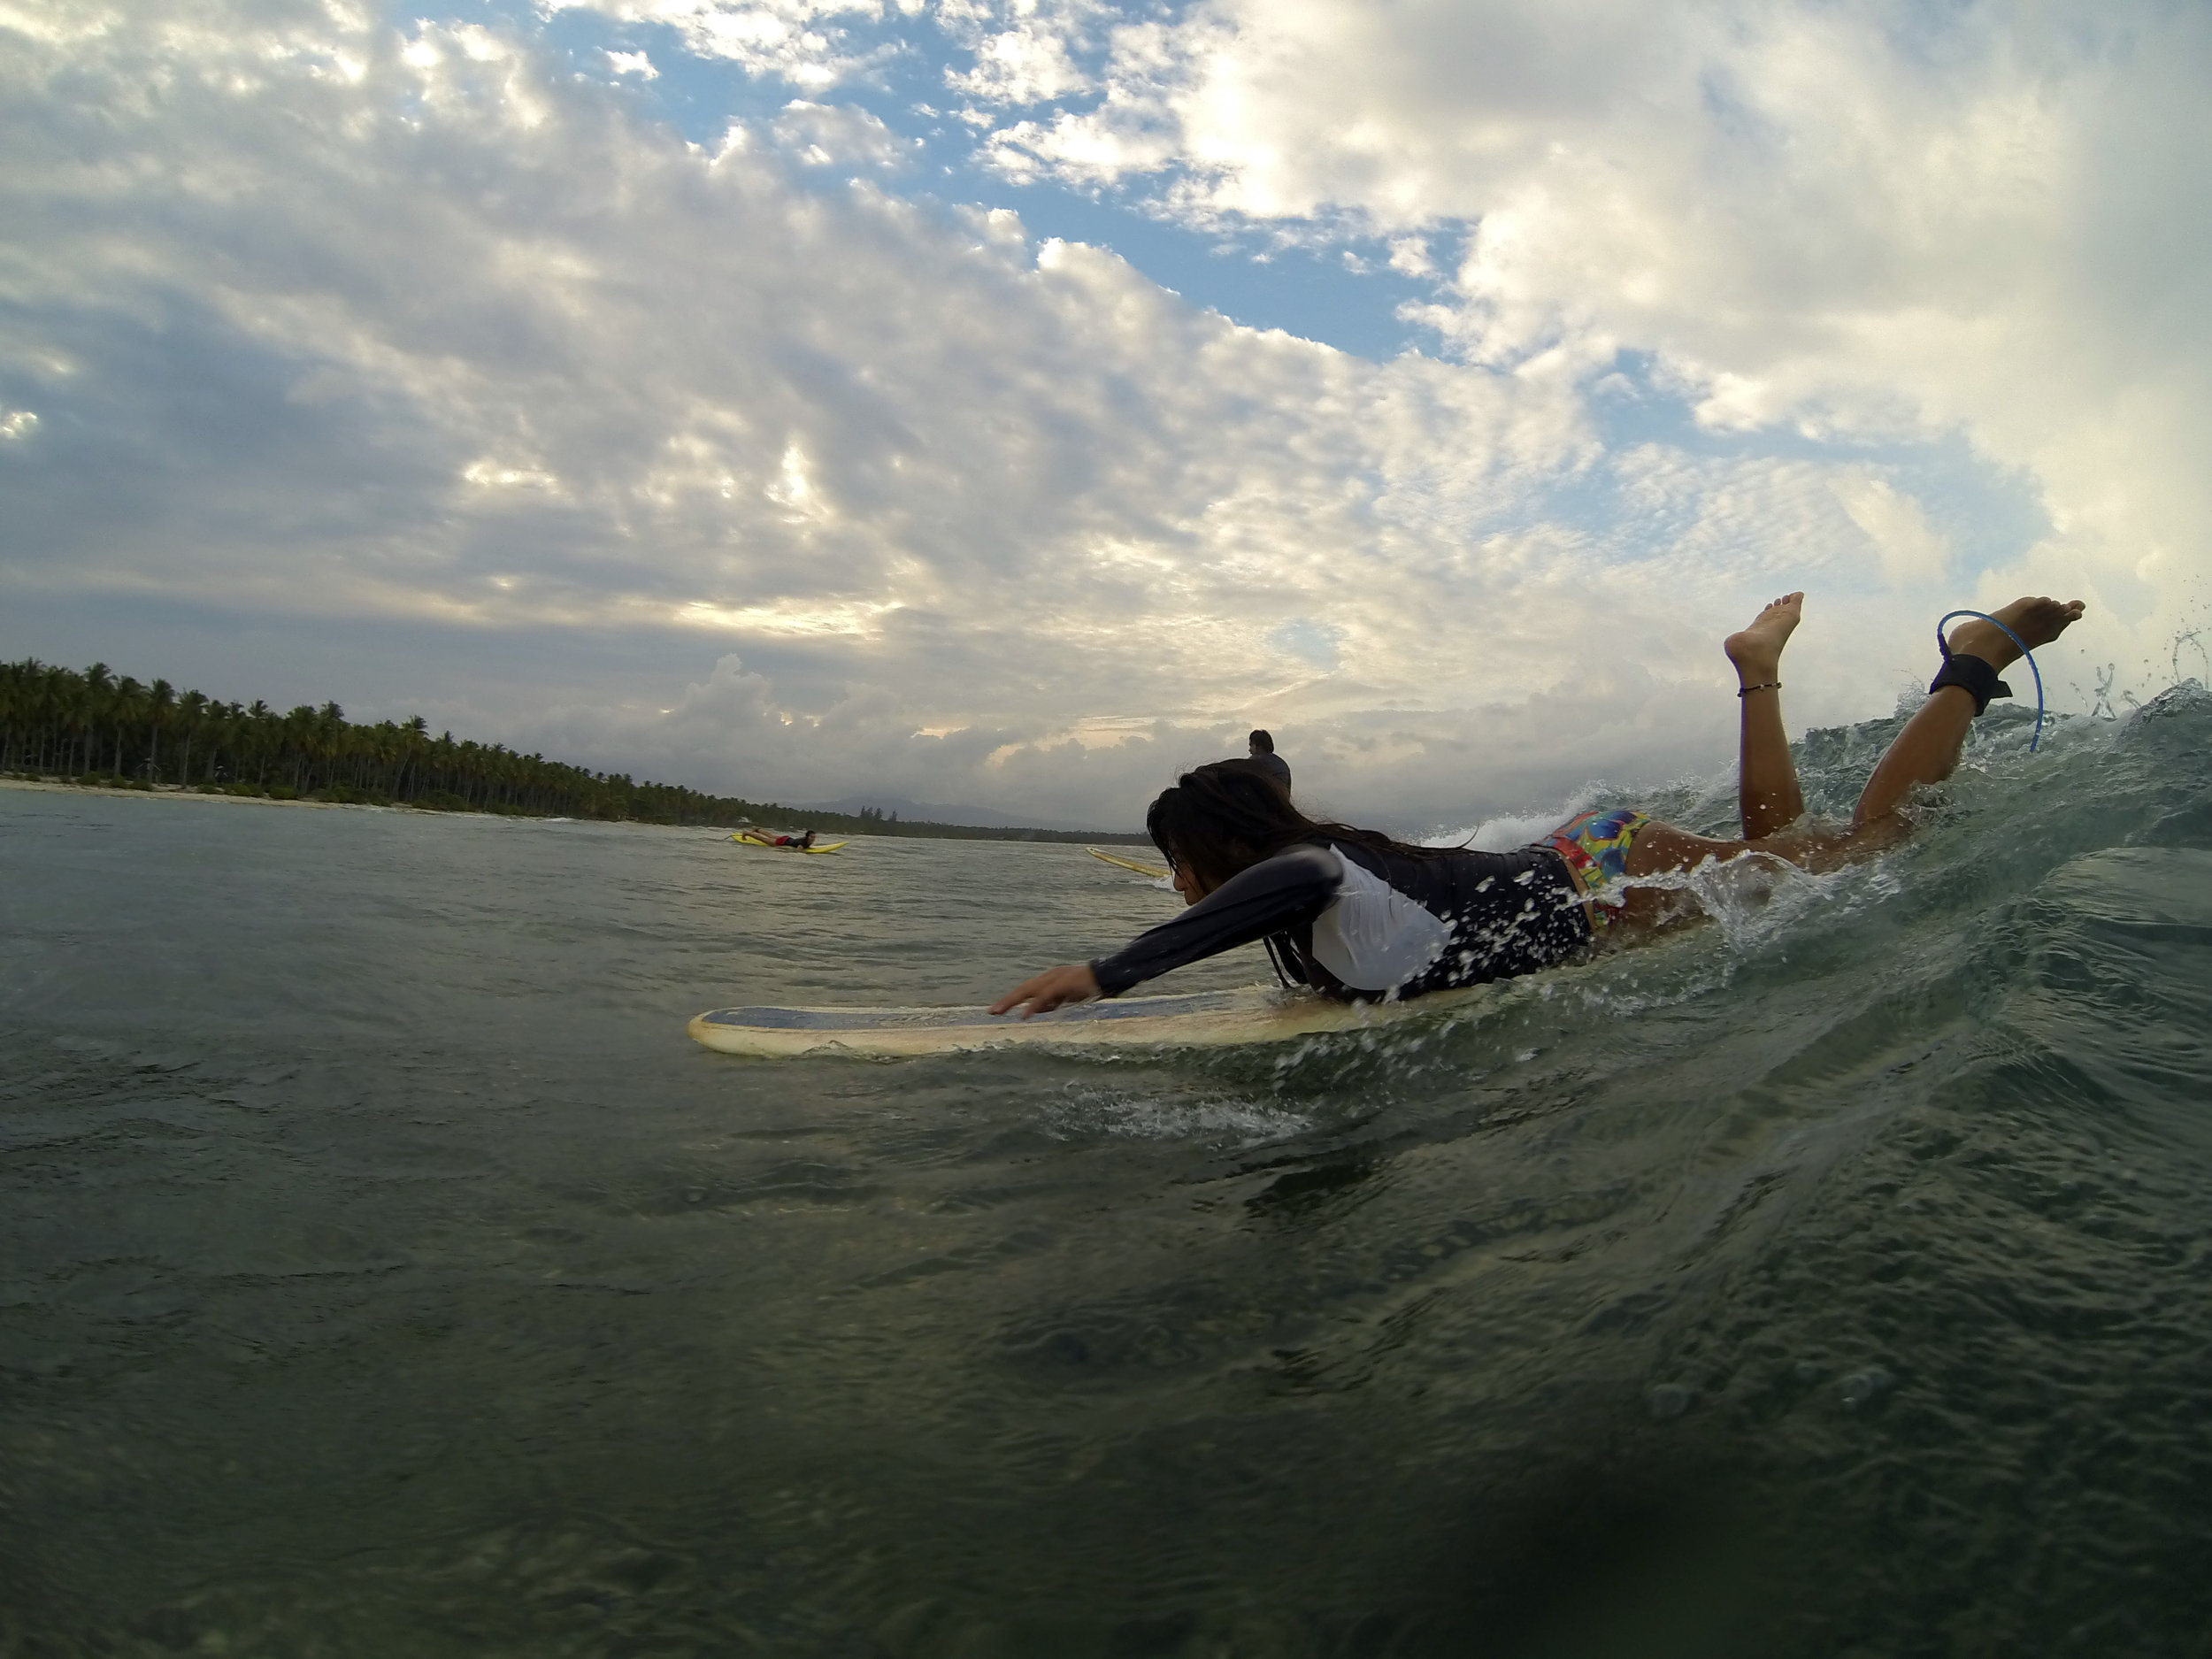 Circa 2014 - Me still learning (and I still am up to now) how to catch waves. Hence, the awkward position.